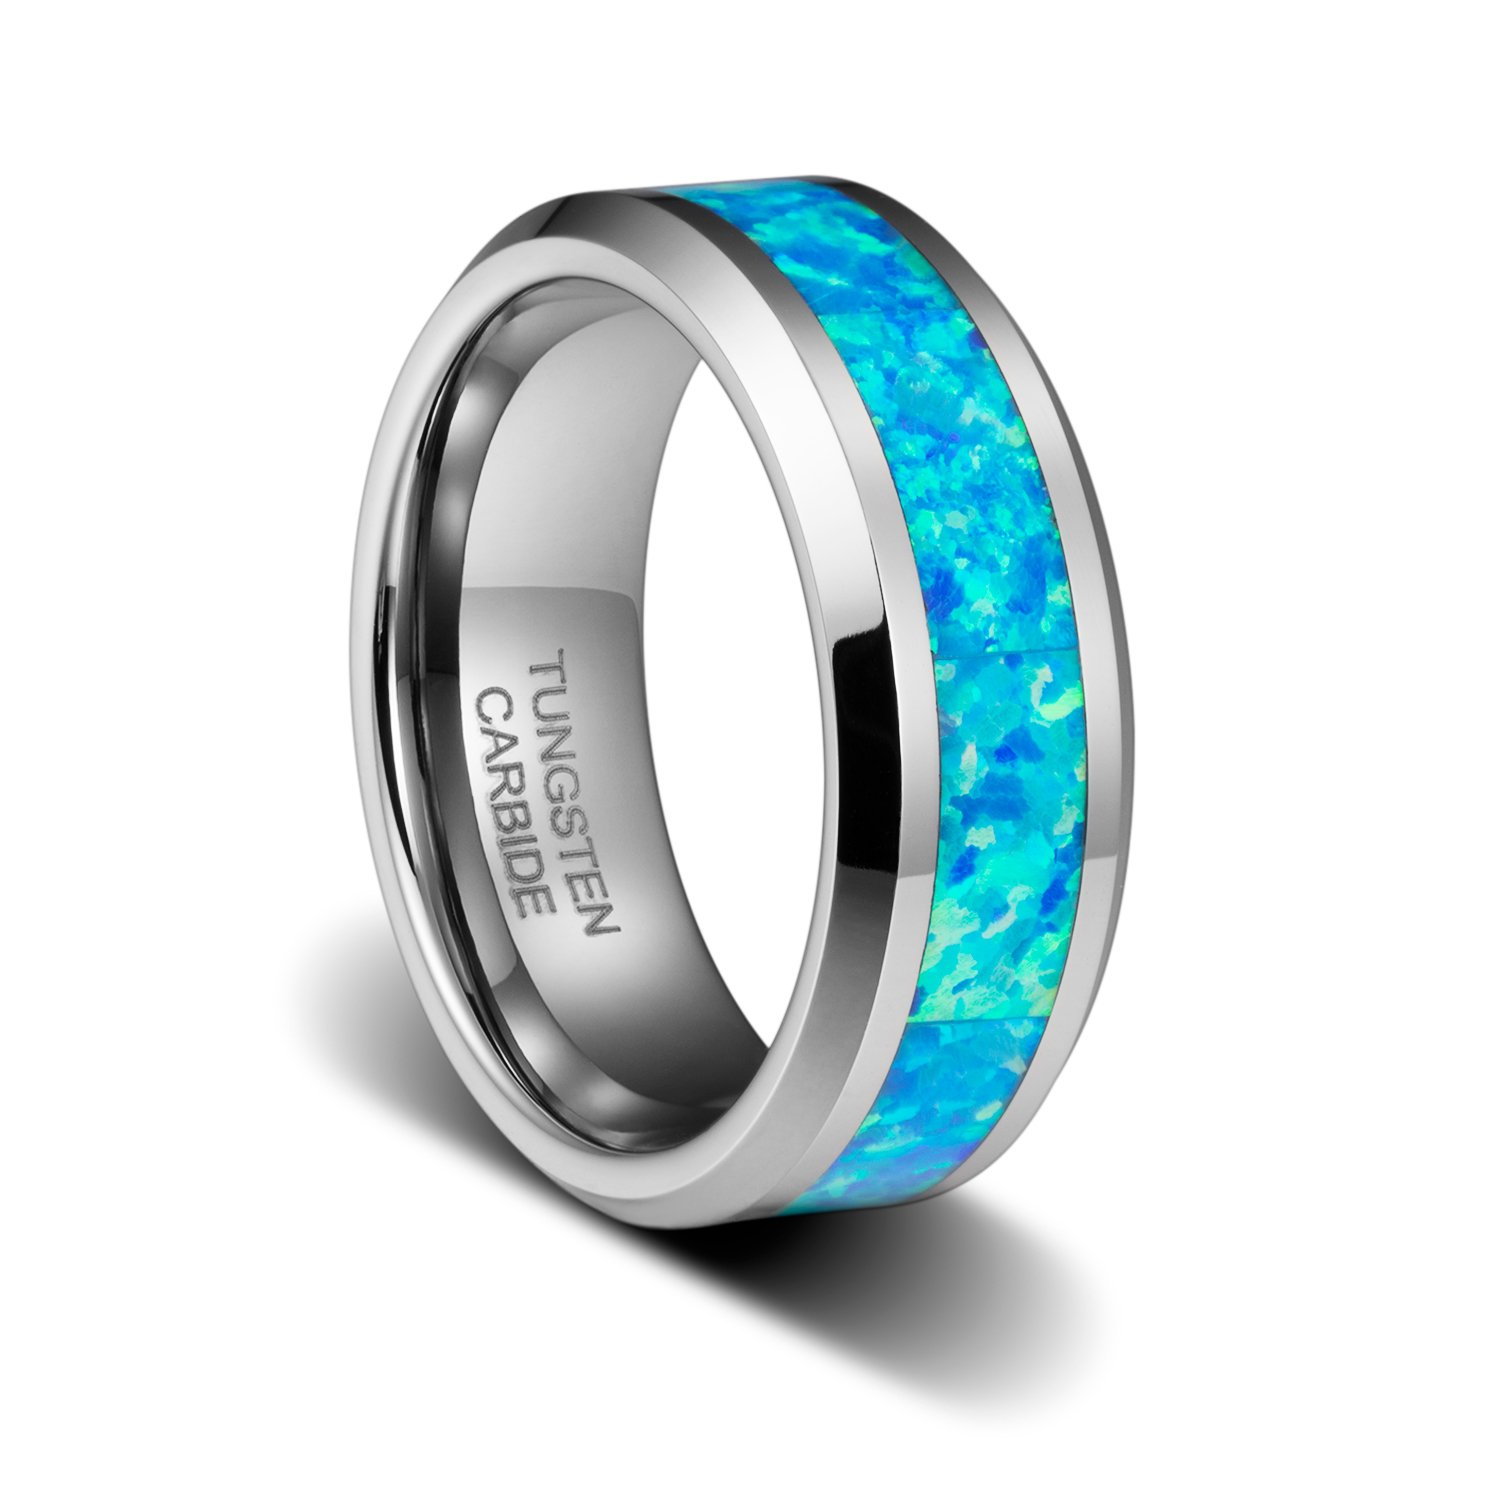 TUSEN JEWELRY 8mm Birthstone Polished Wedding Band with Genuine Blue Opal Inlay Tungsten Ring Beveled